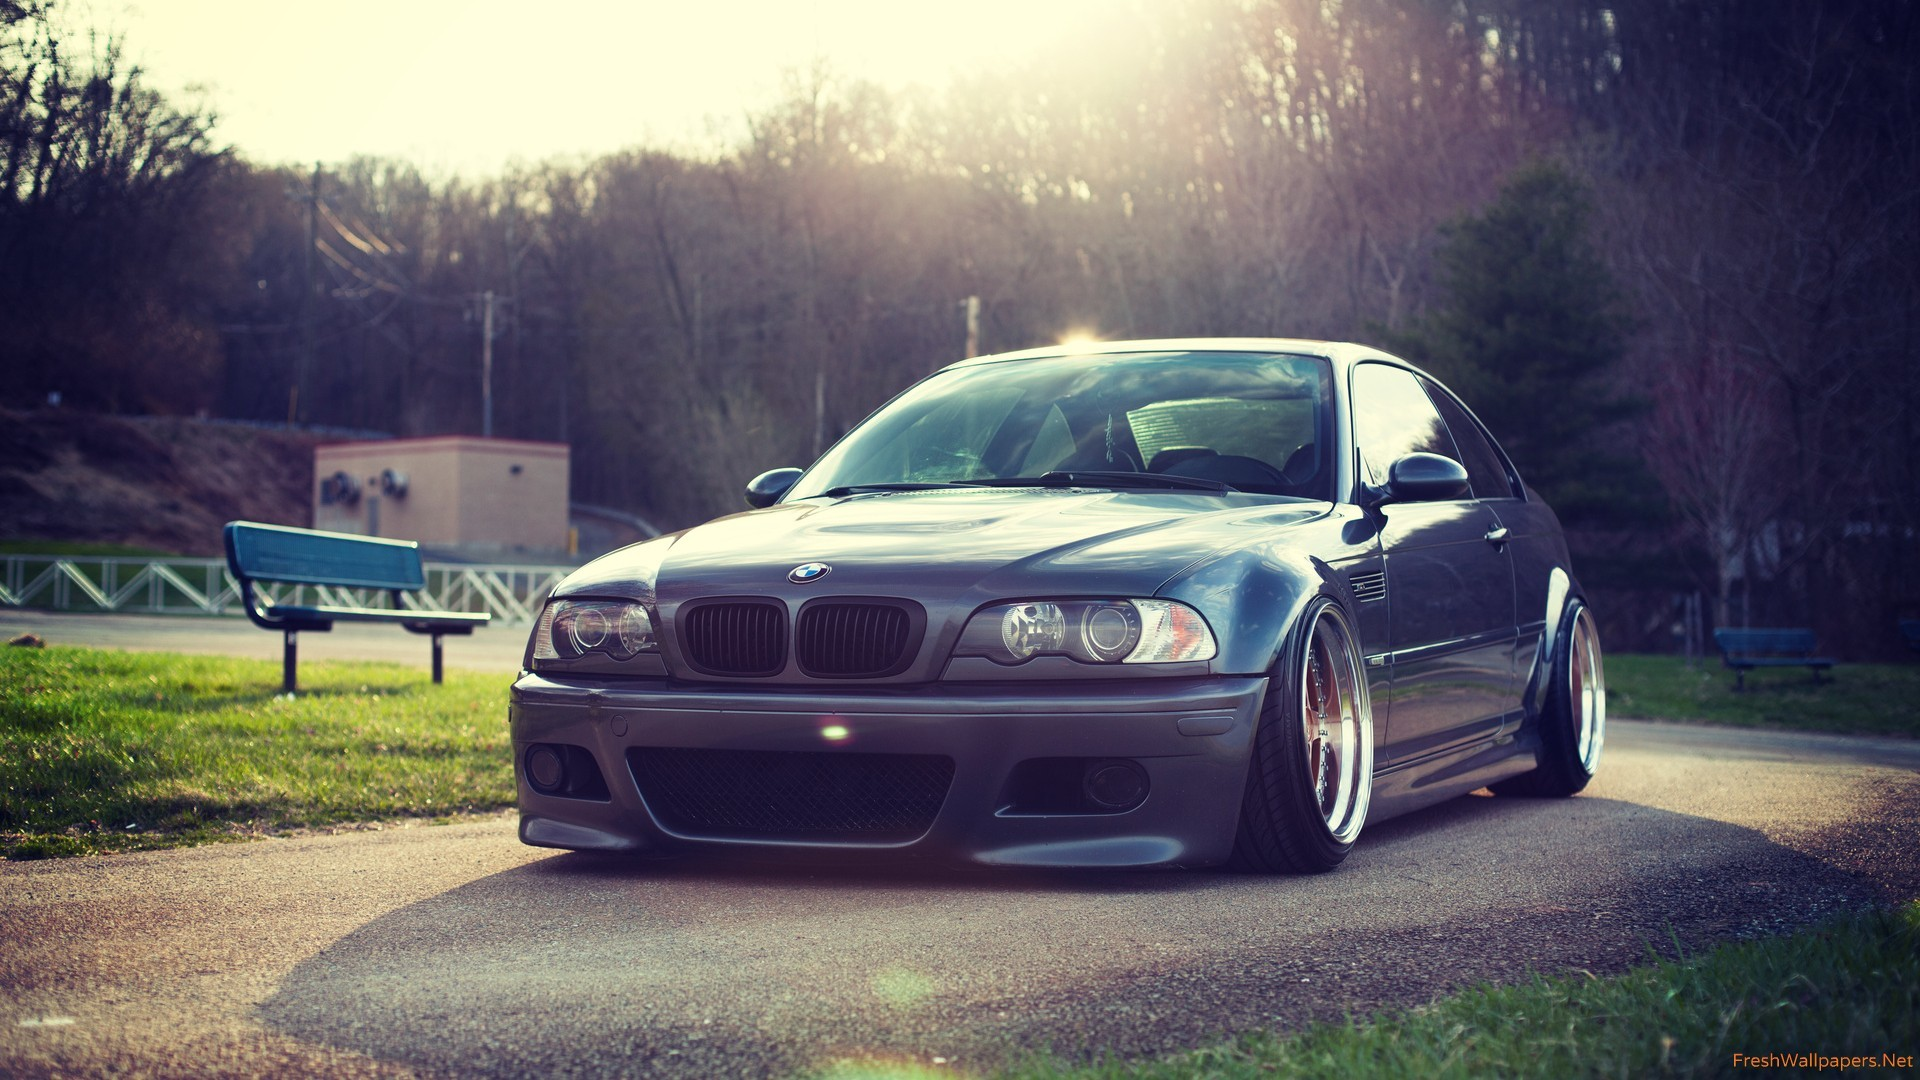 1920x1080 bmw-e46-m3-car-front-tuning Wallpaper: